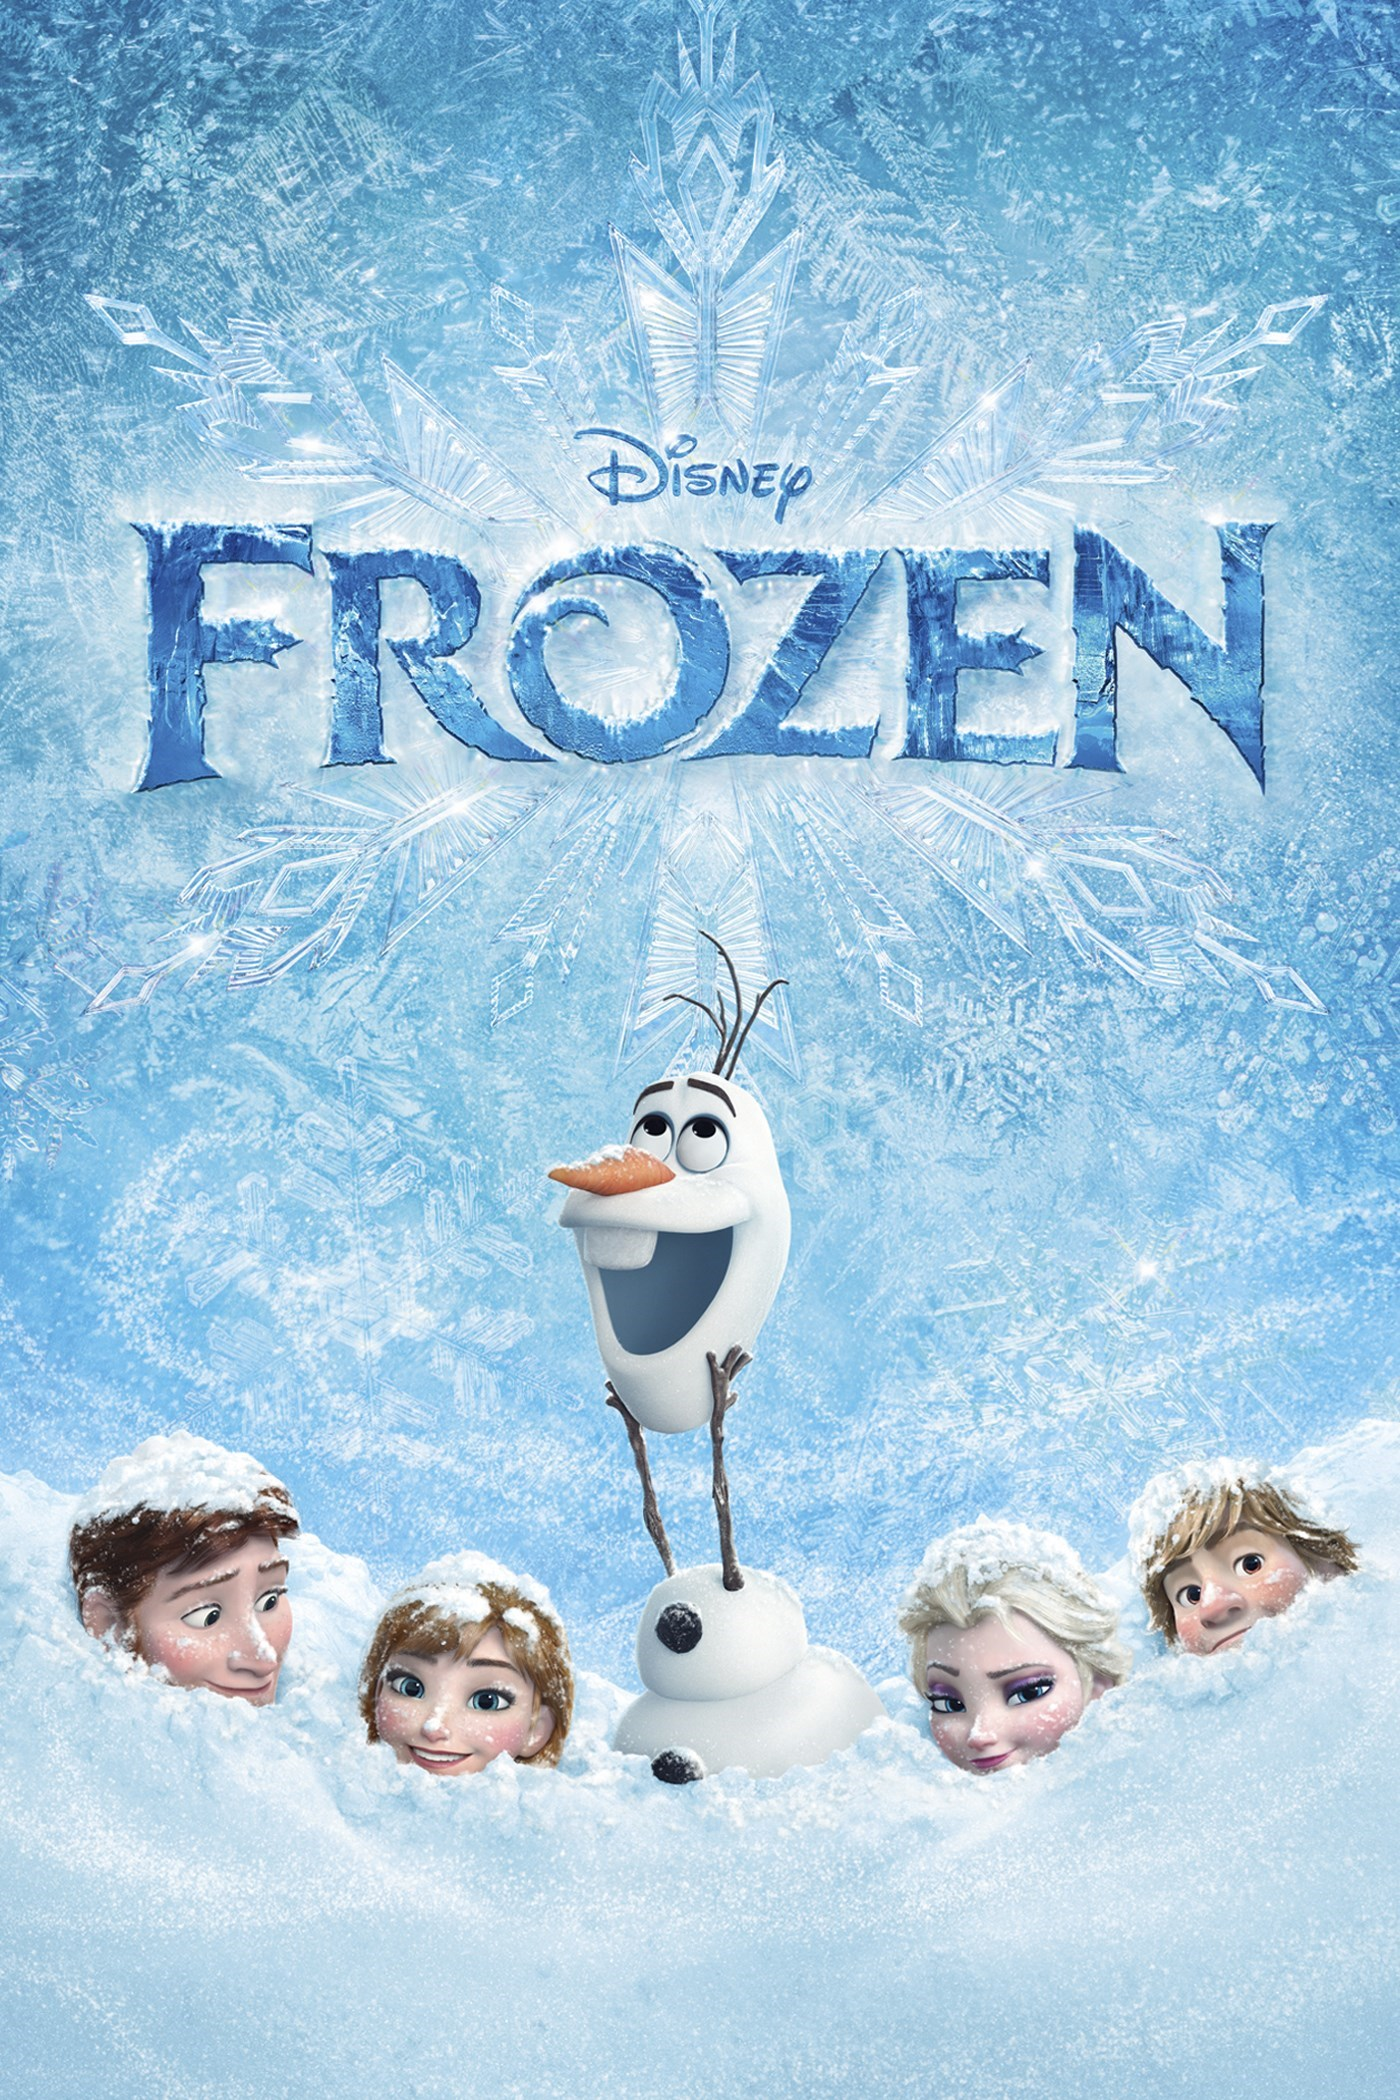 Frozen-Musical Movies